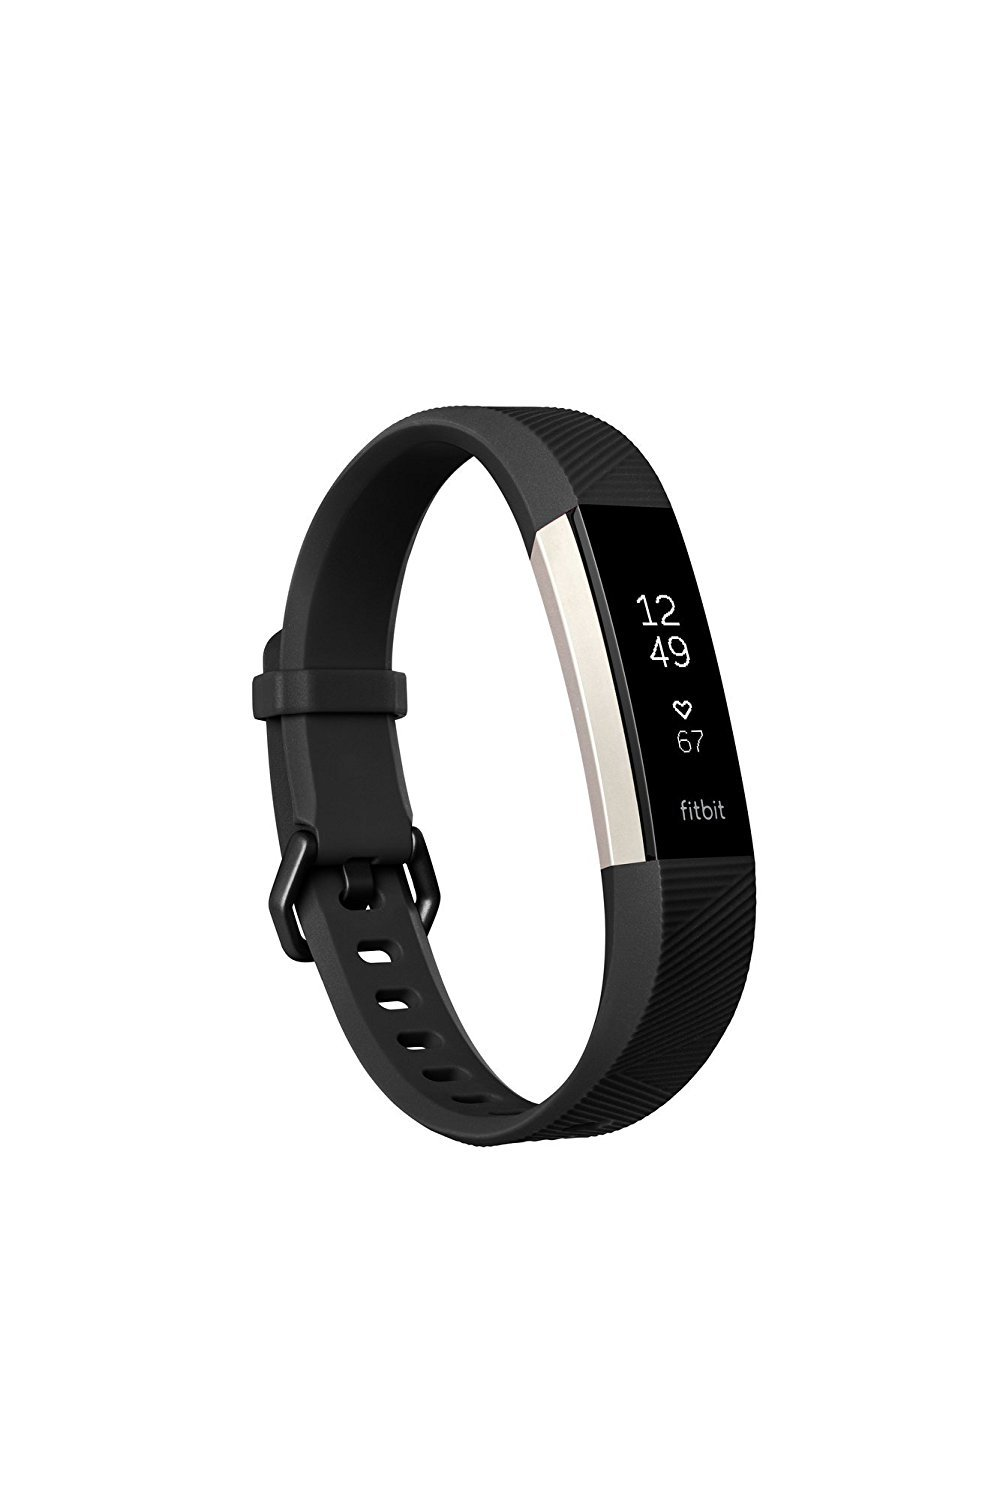 Fitbit Alta HR Activity Tracker, Large, Black FB408SBKL (Certified Refurbished) by Fitbit (Image #1)